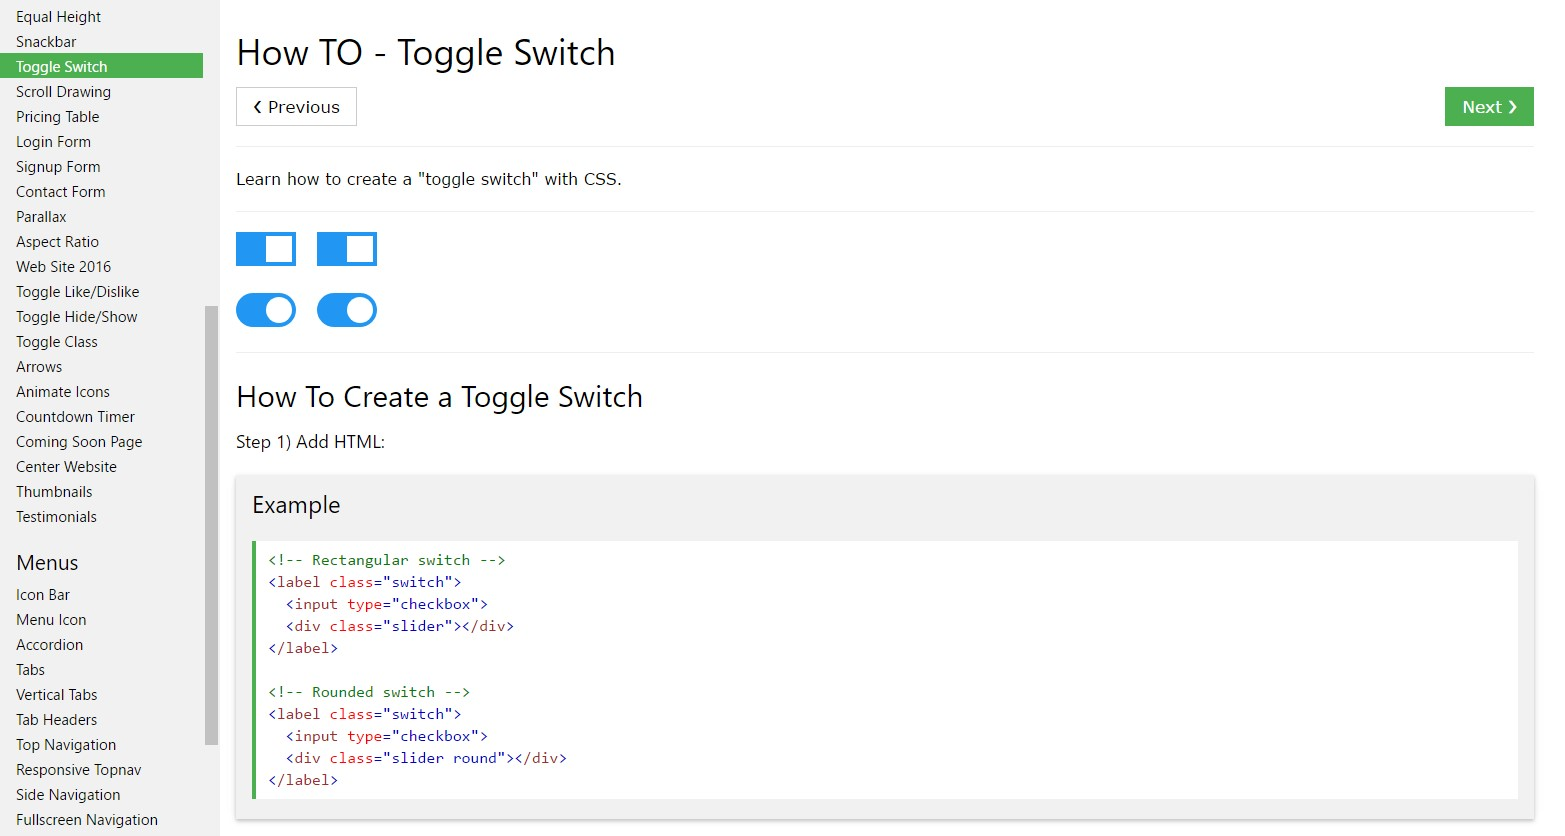 The best ways to create Toggle Switch